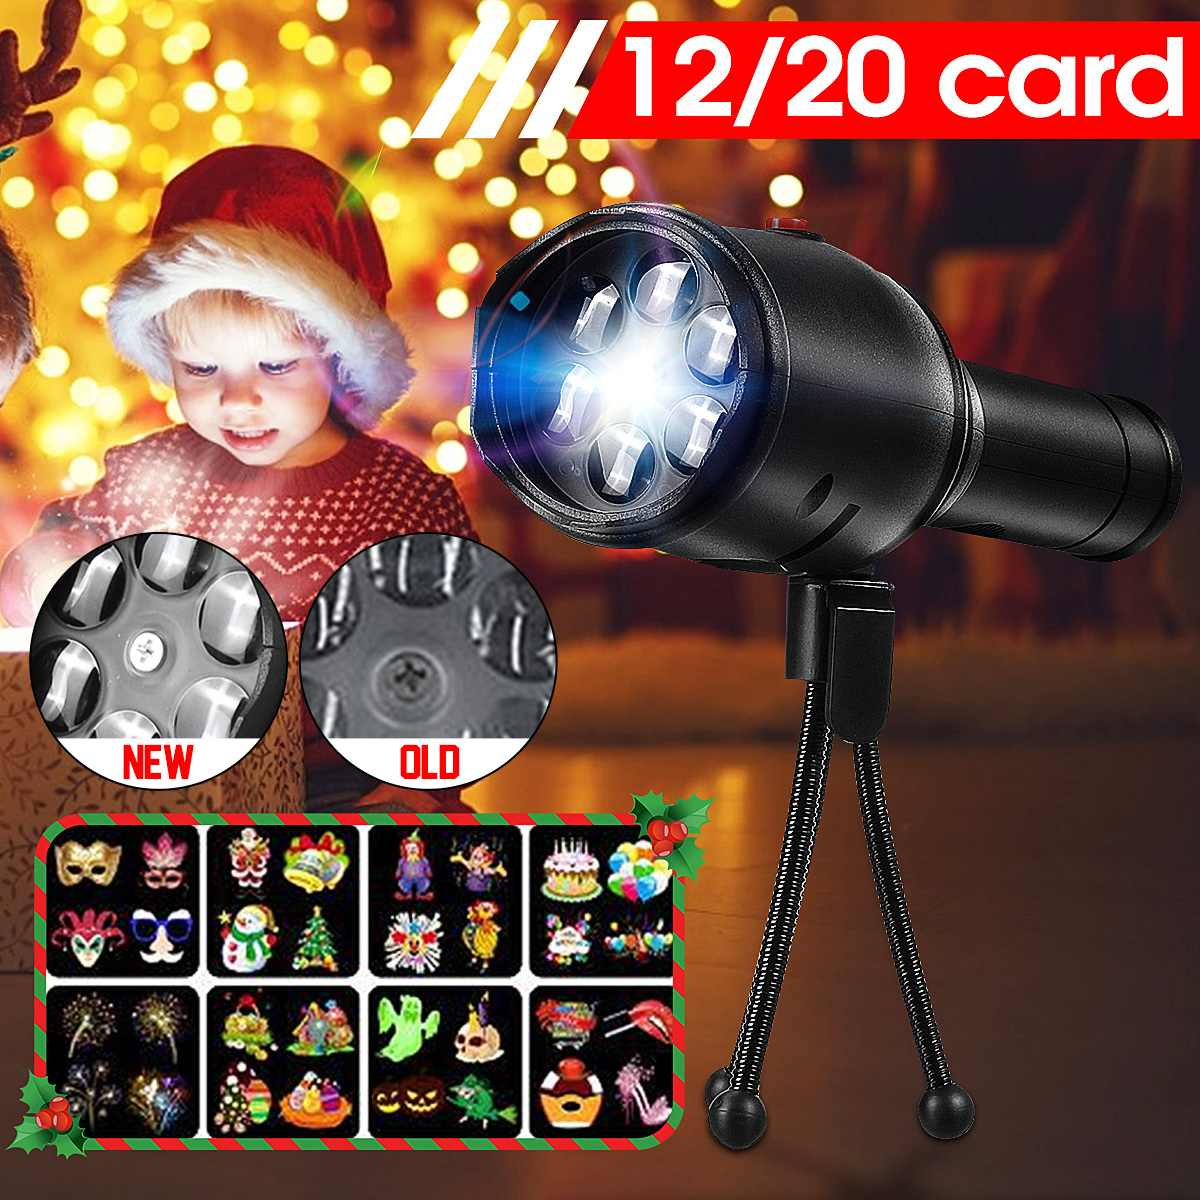 12/20 Cards Garden Landscape Projector Lamp Outdoor Park Christmas Decorative Holiday Projector Lighting Removable Spotlight